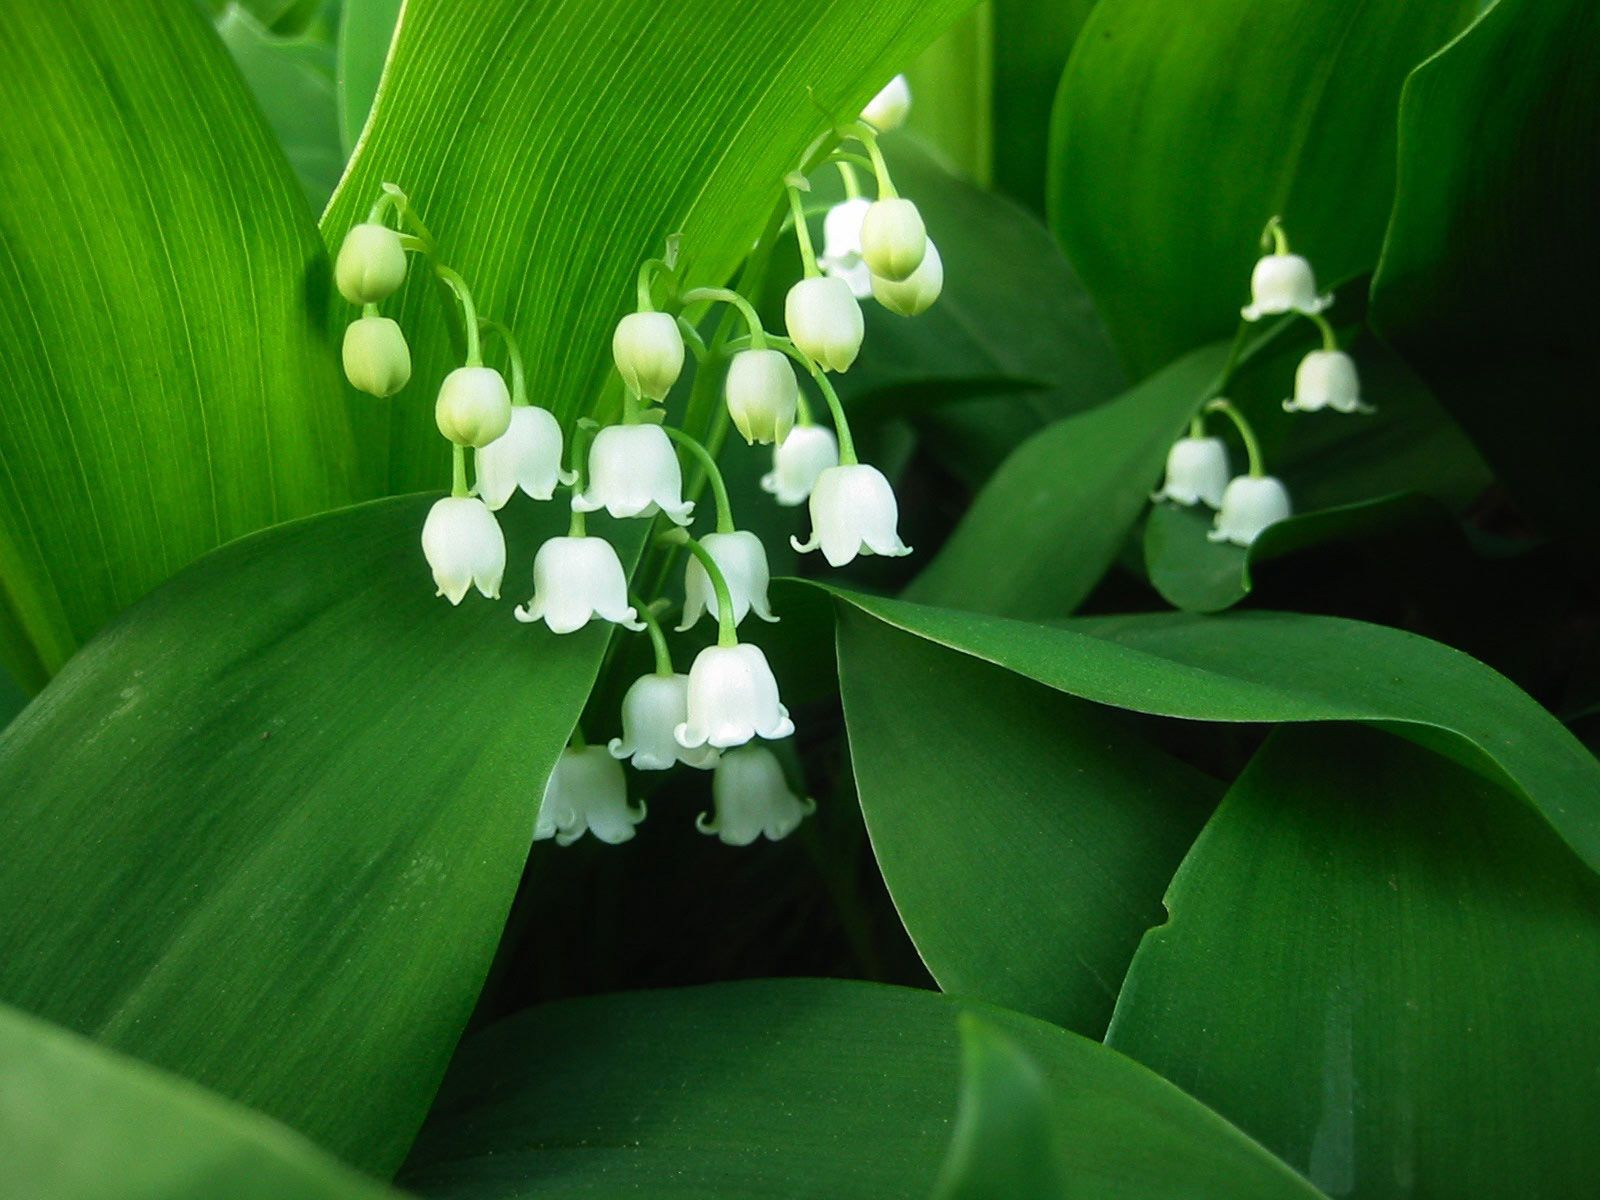 Lily of the valley manage to beautiful both to the eye and the nose lily of the valley manage to beautiful both to the eye and the nose izmirmasajfo